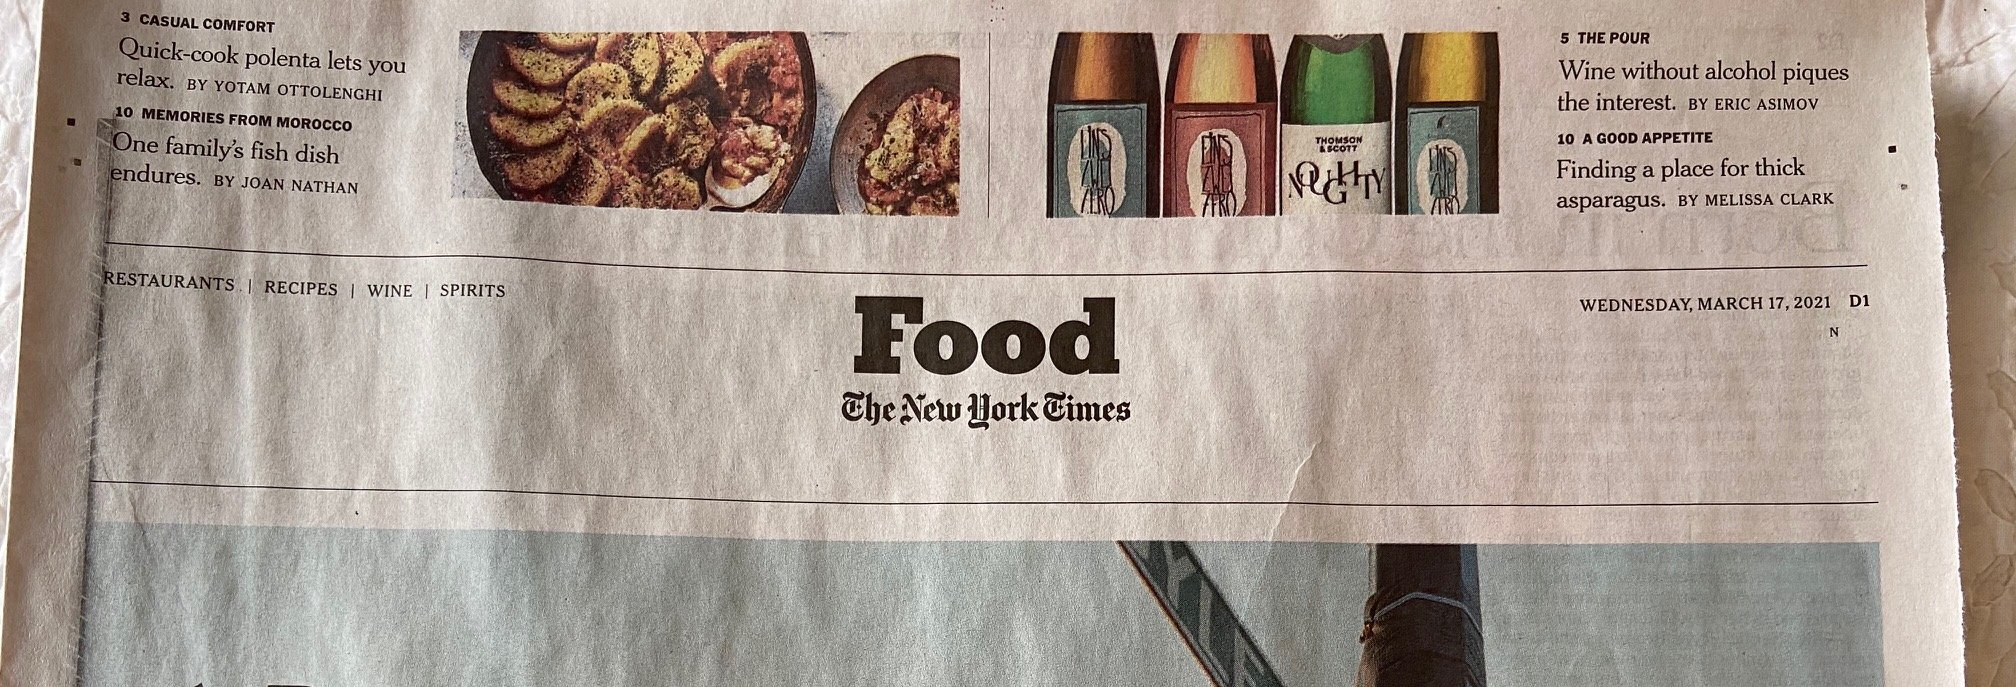 Yep. We're on the front cover of the New York Times! We had to sit down when we saw this. Now we're in the big leagues. So exciting...